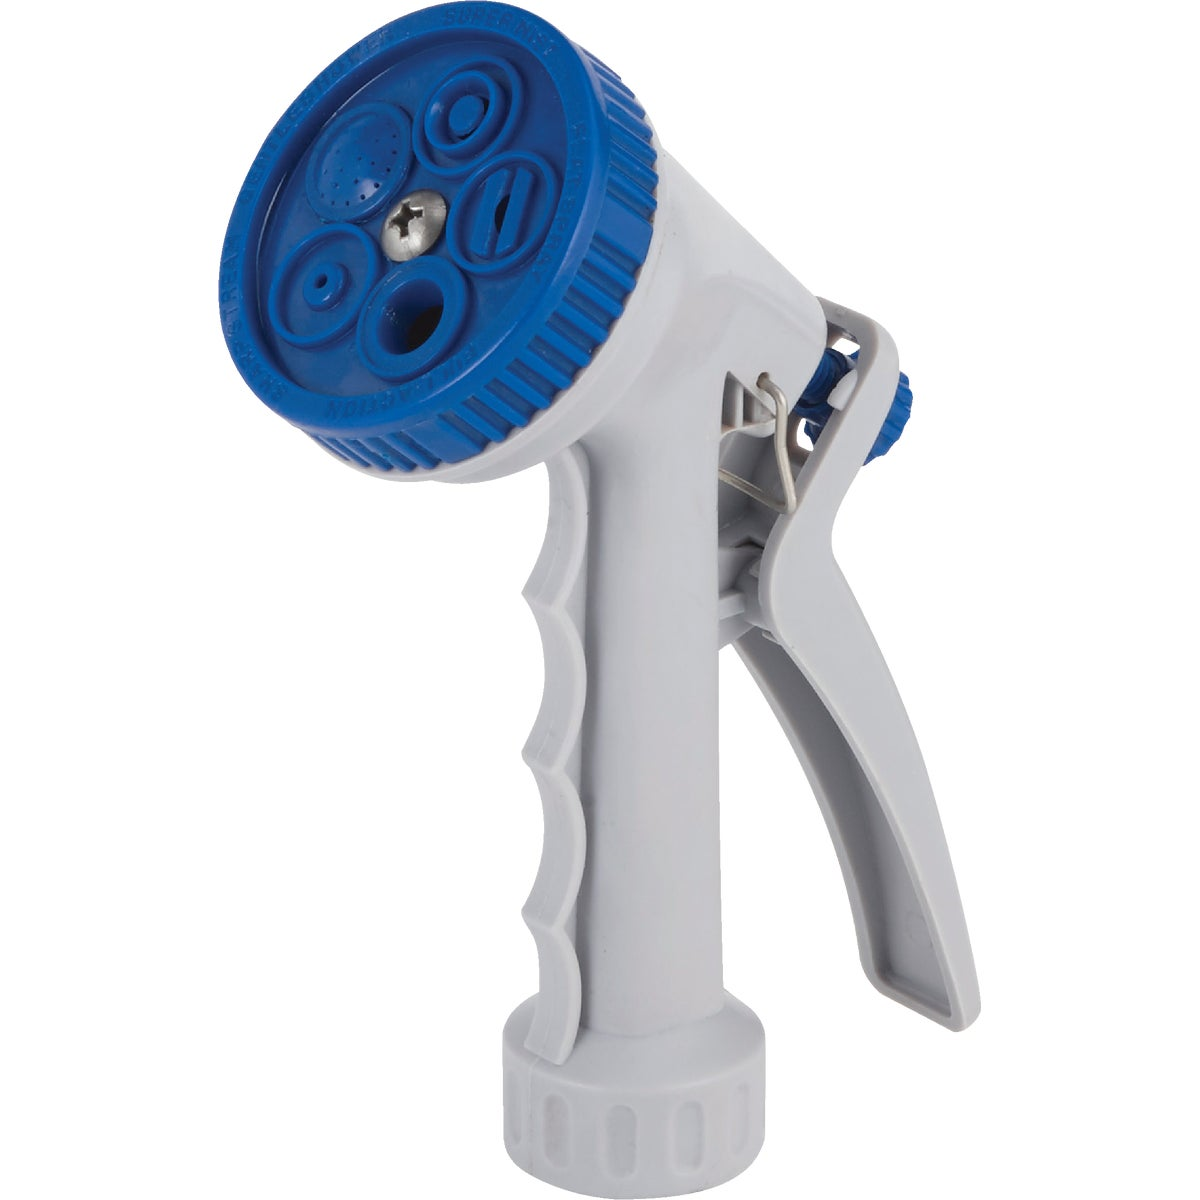 MULTI PATTRN POLY NOZZLE - DIT586 by Bosch G W